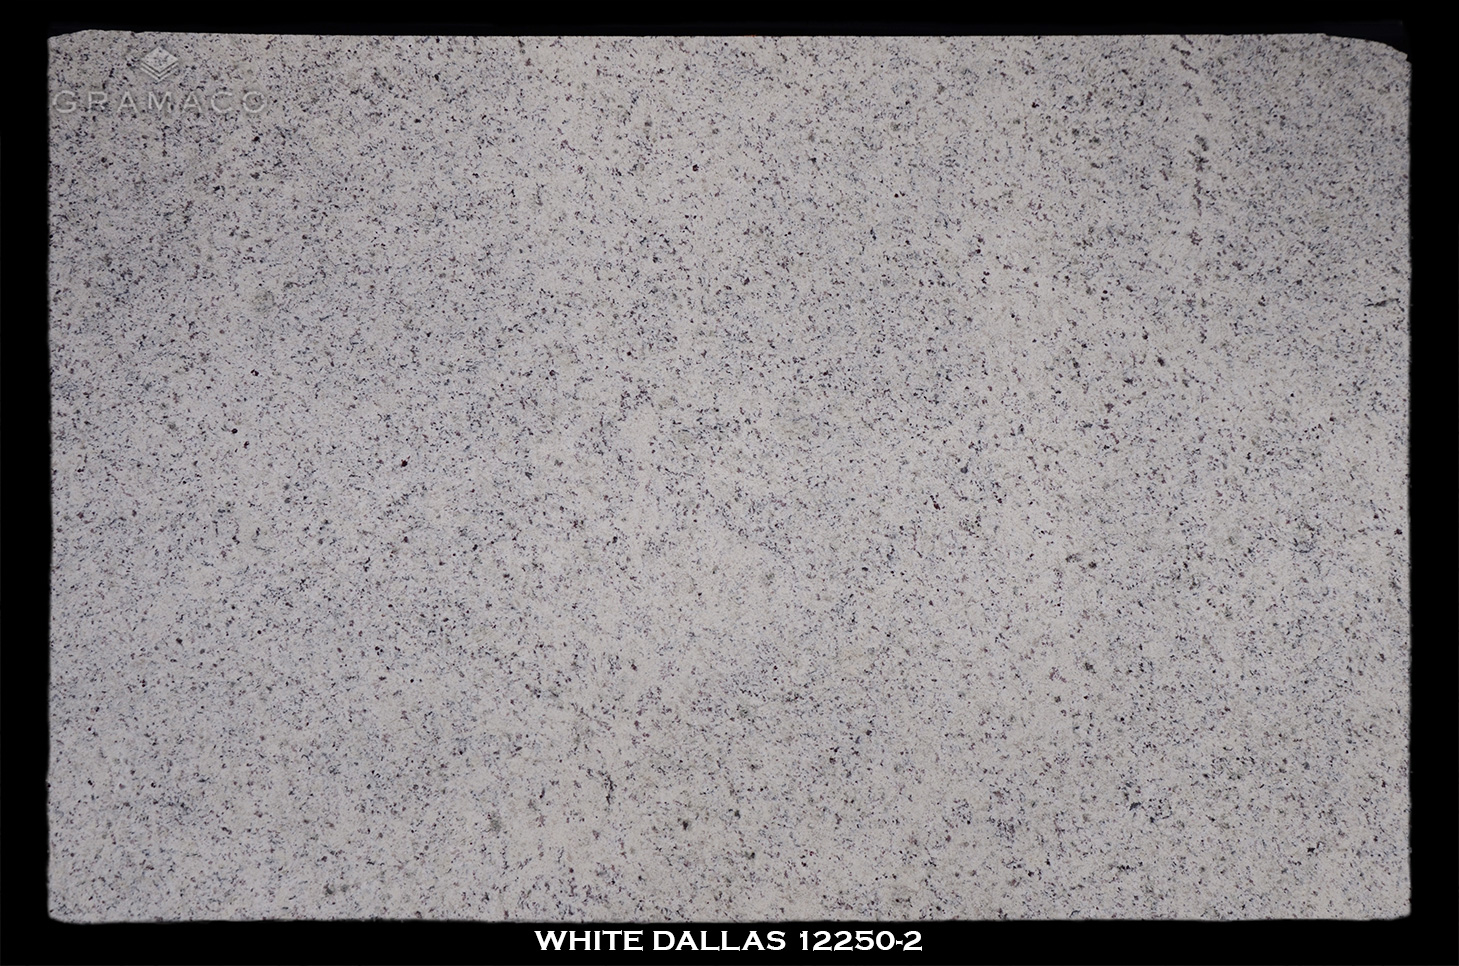 WHITE-DALLAS-12250-2--FULL-SLAB-BLACK